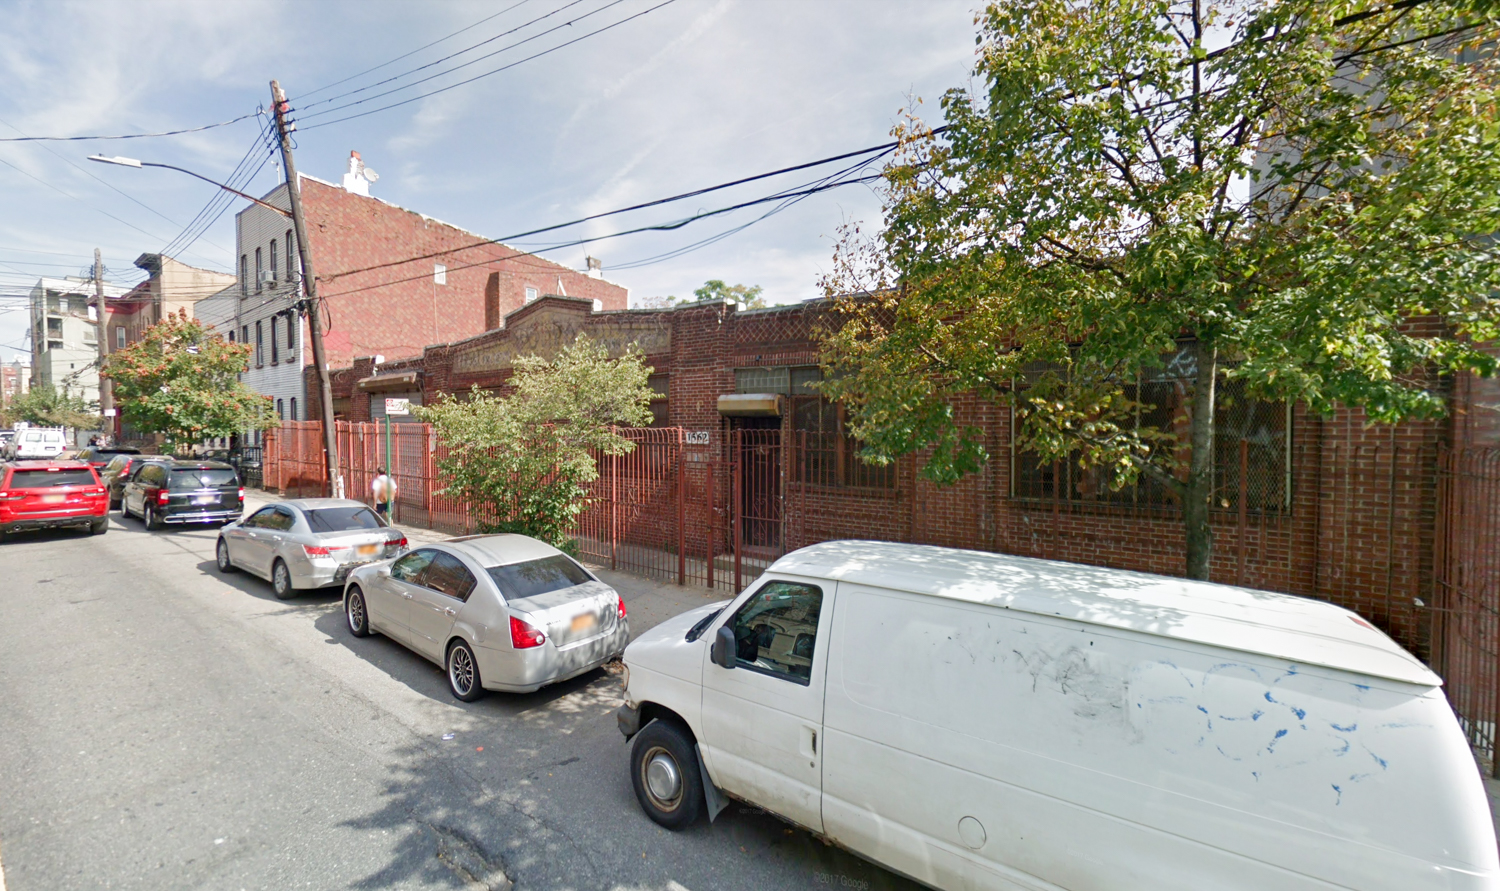 1562 Dekalb Avenue, via Google Maps